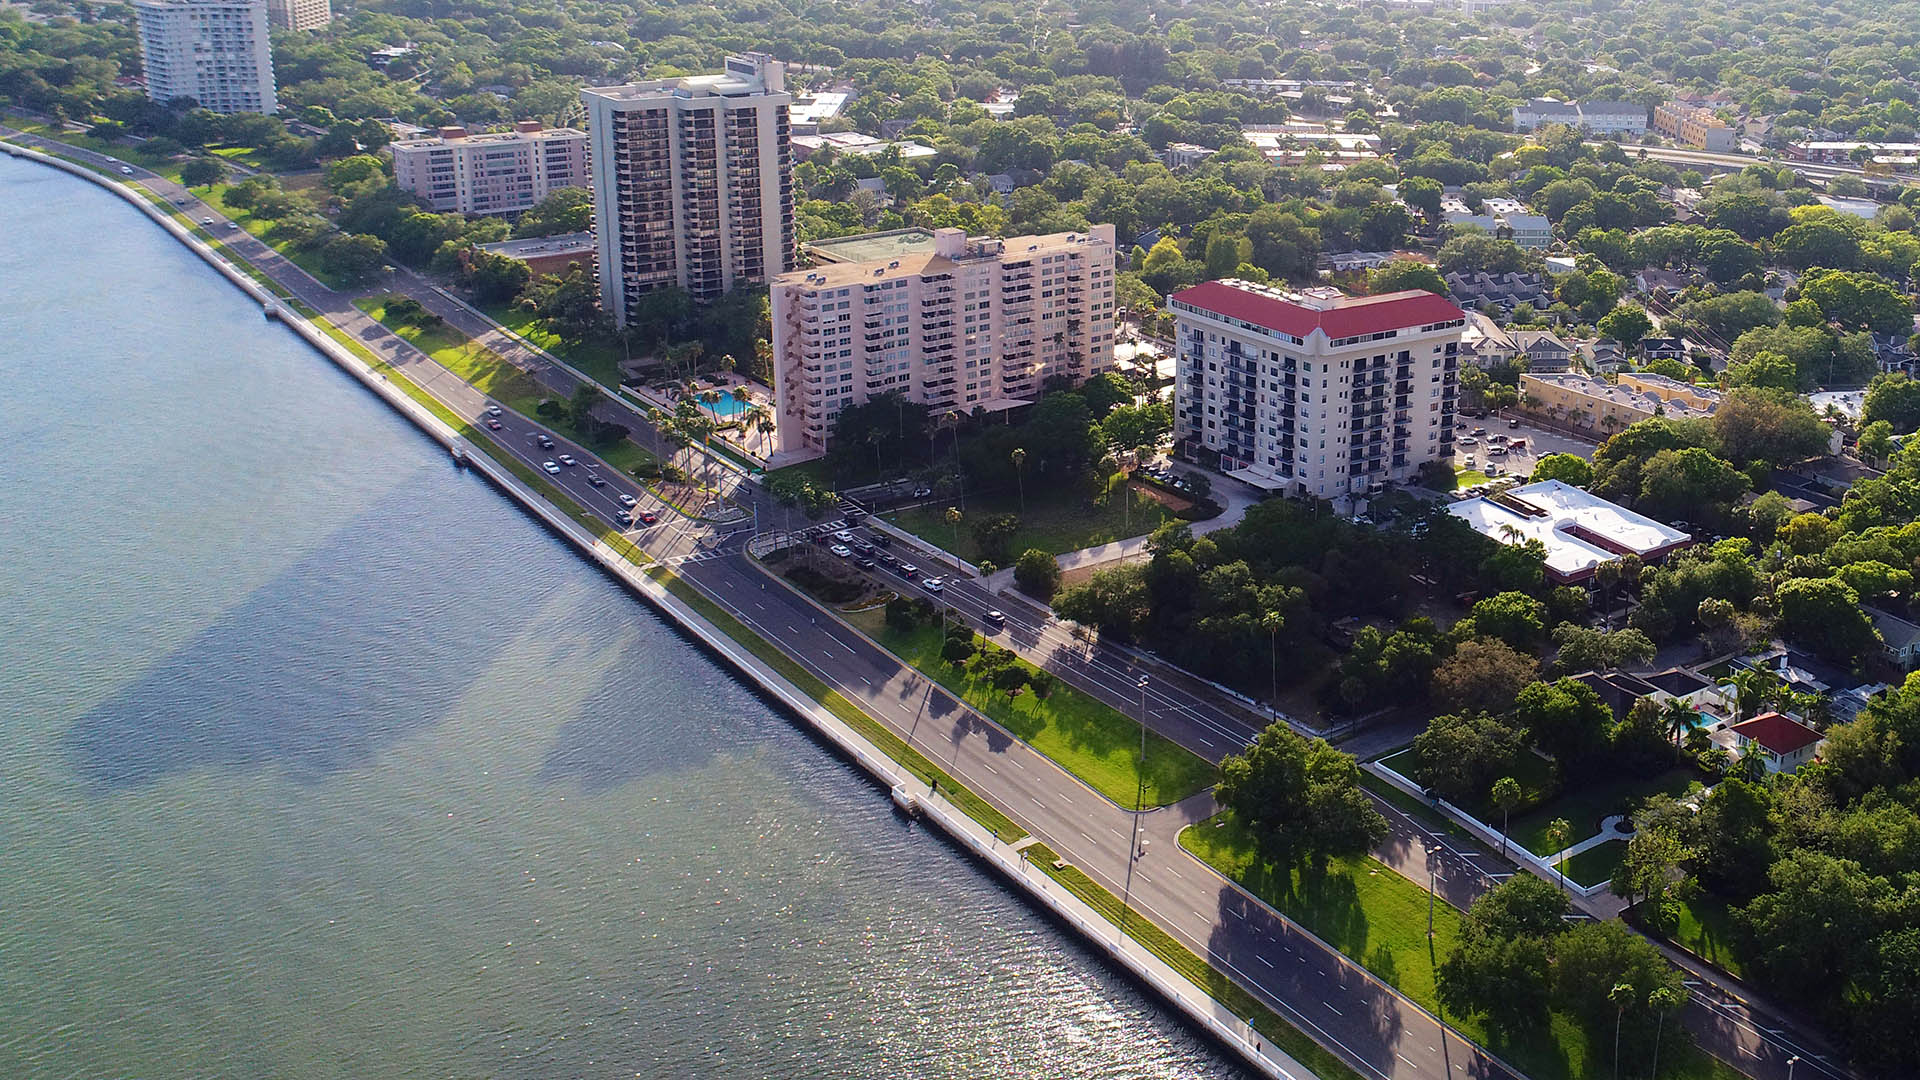 Bayshore longest waterfront boardwalk in the world PHOTOS